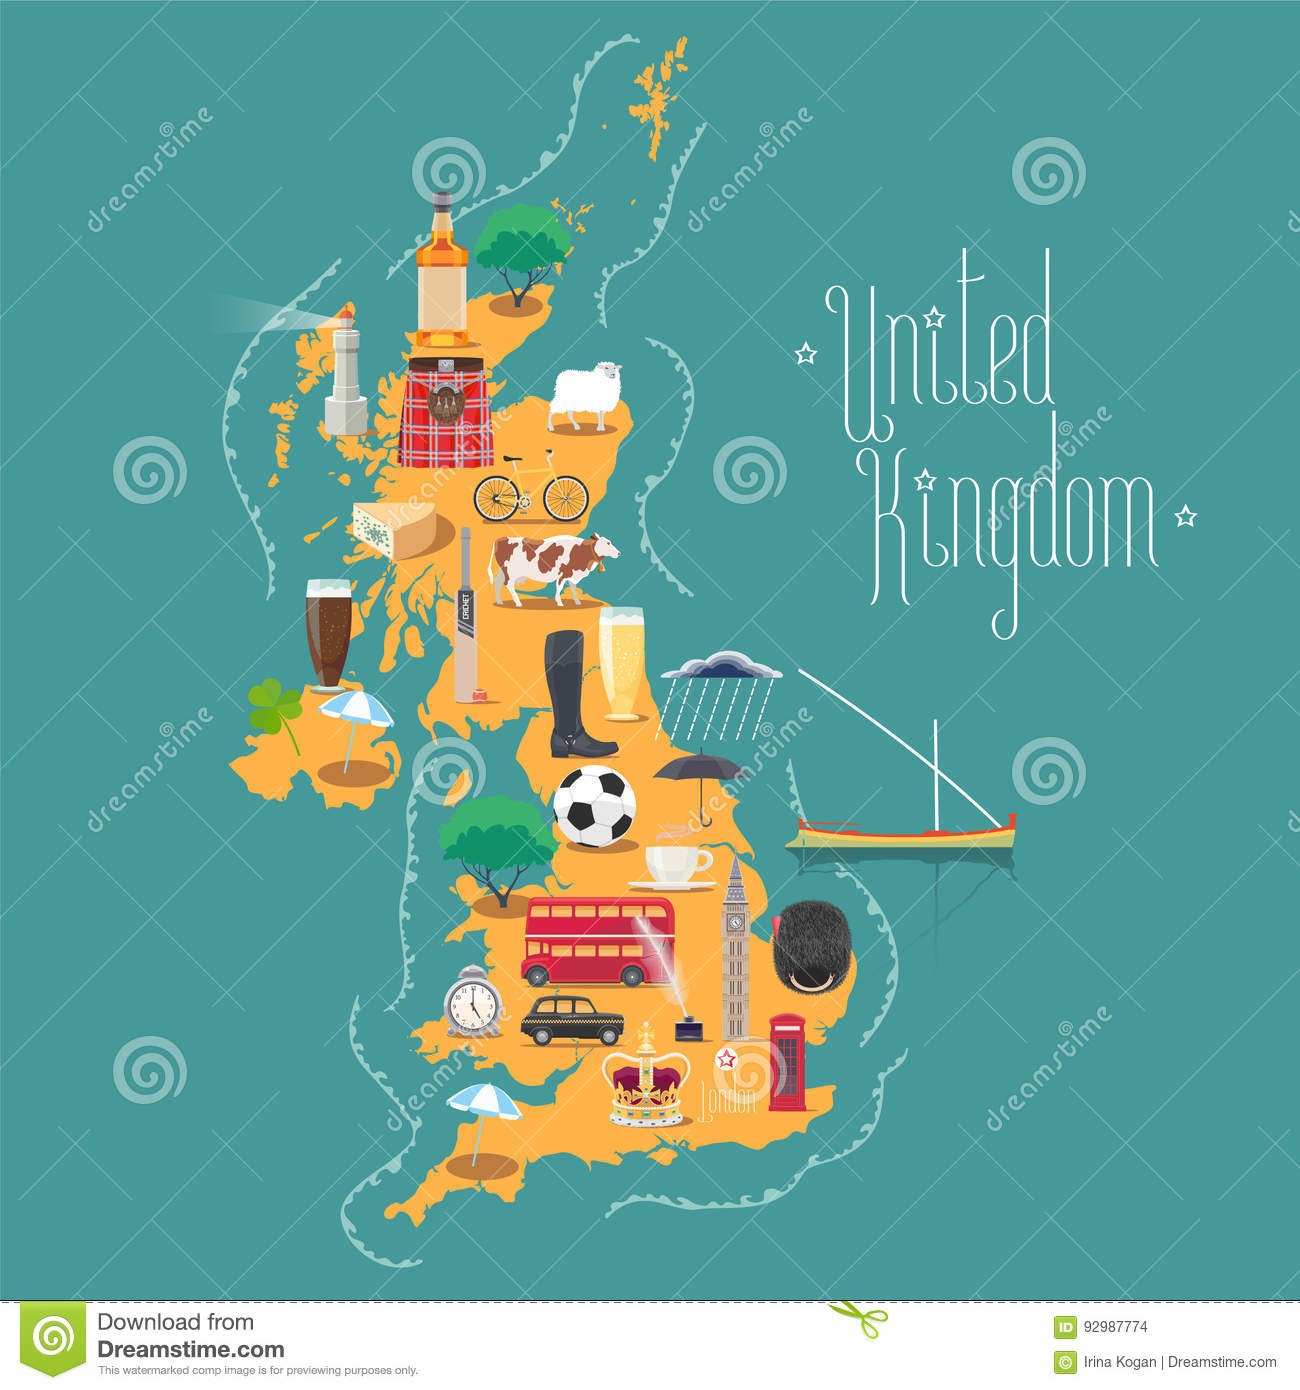 Map Of Uk Scotland And Ireland.Map Of United Kingdom Great Britain With Scotland And Ireland